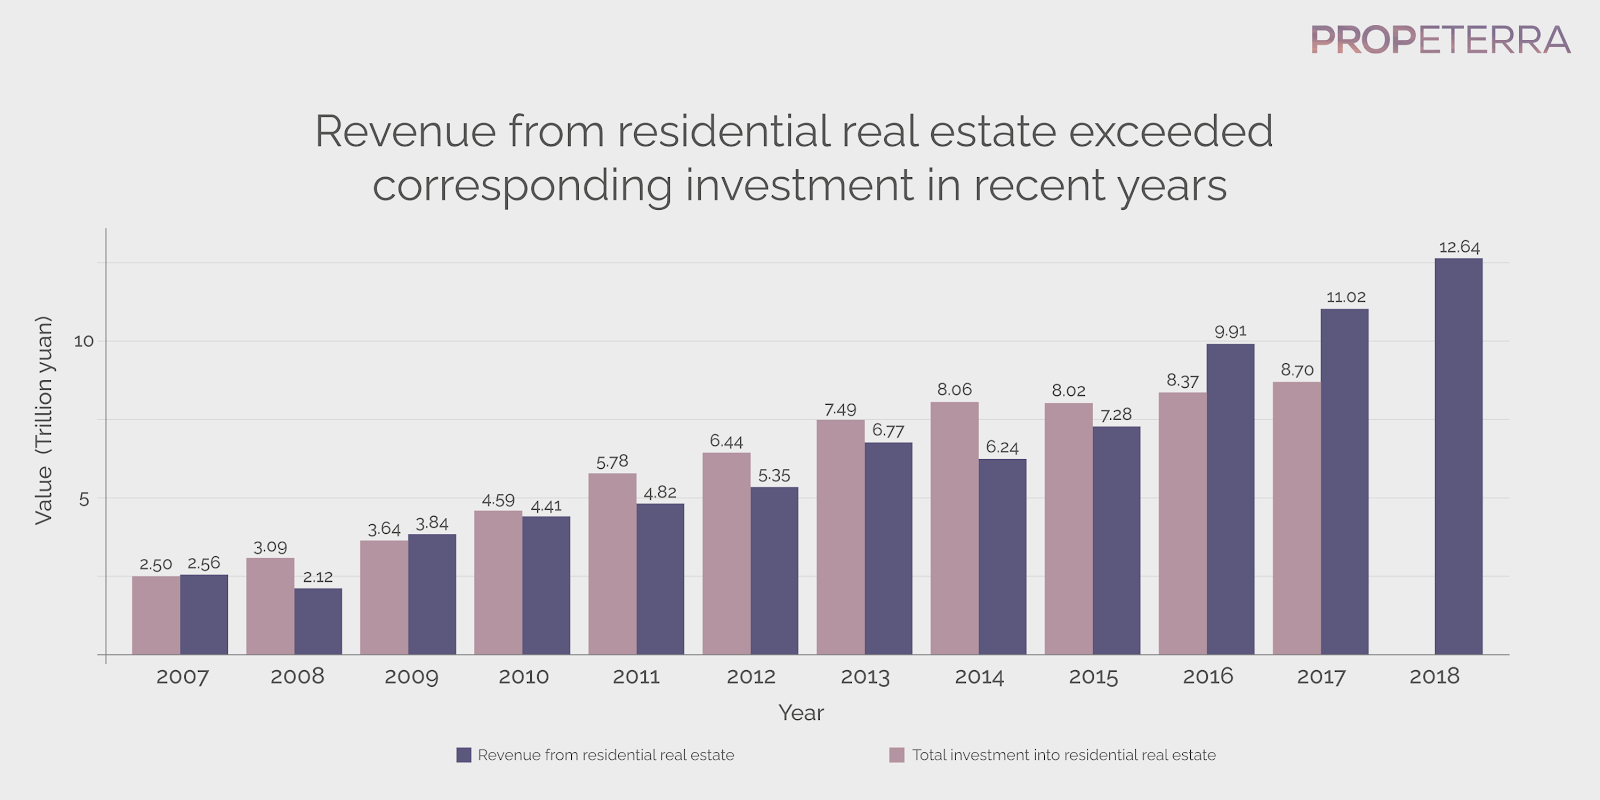 Revenue from residential